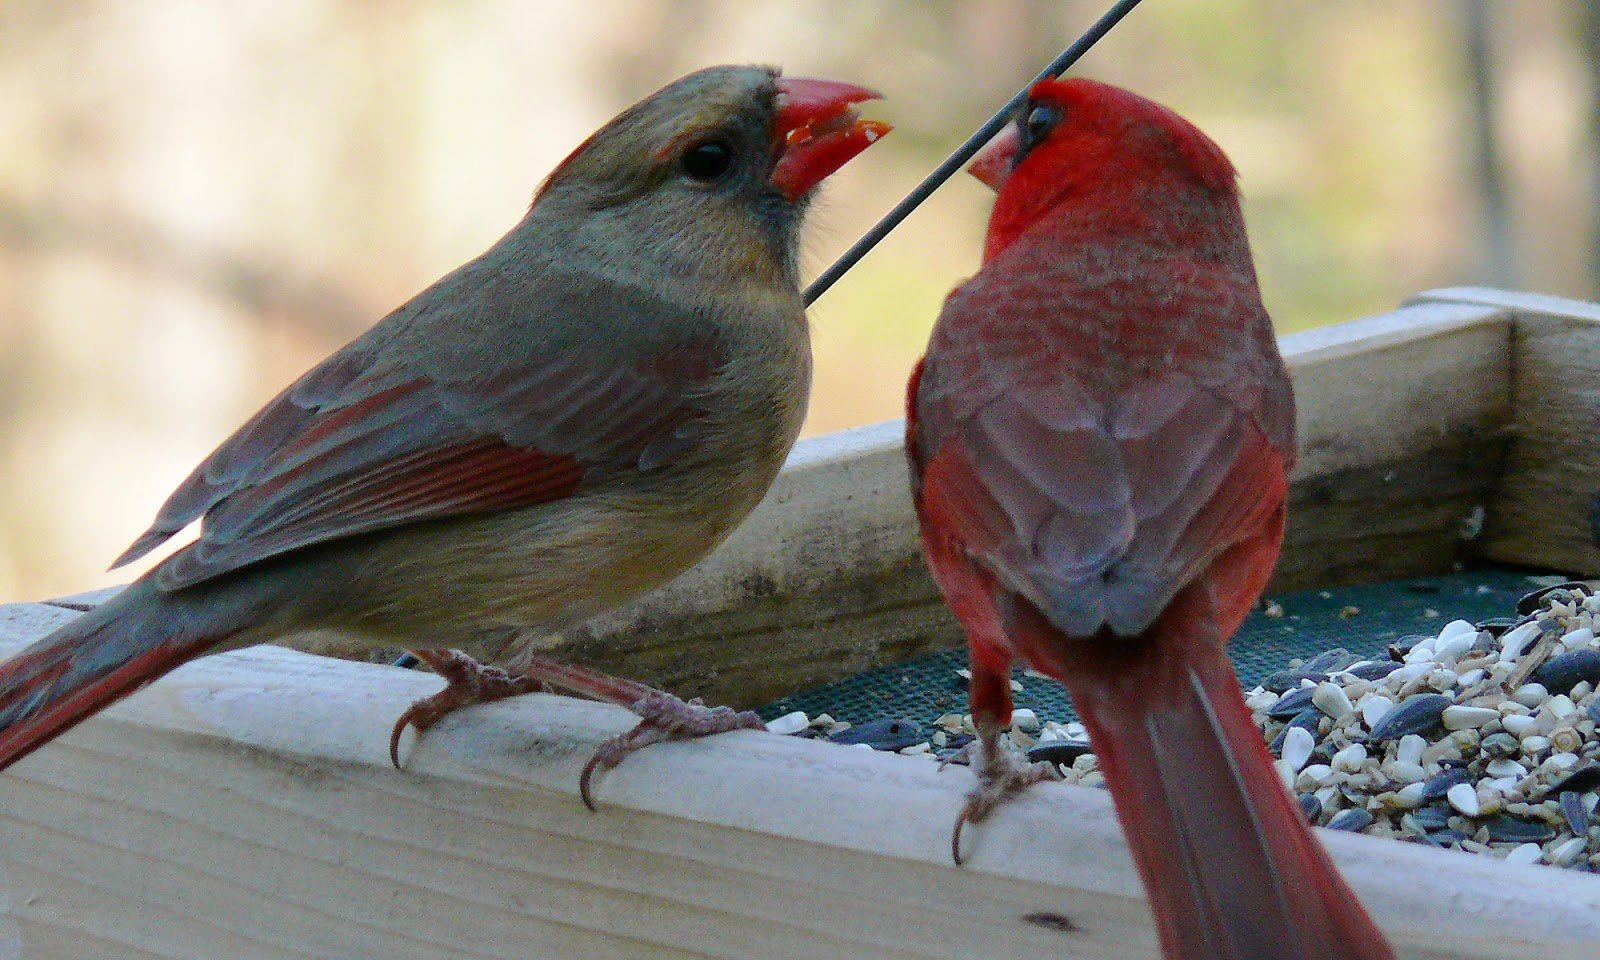 World bird sanctuary birdlore northern cardinal the romantic bird the male cardinal shares seed with the female in order to bond with his prospective mate buycottarizona Images